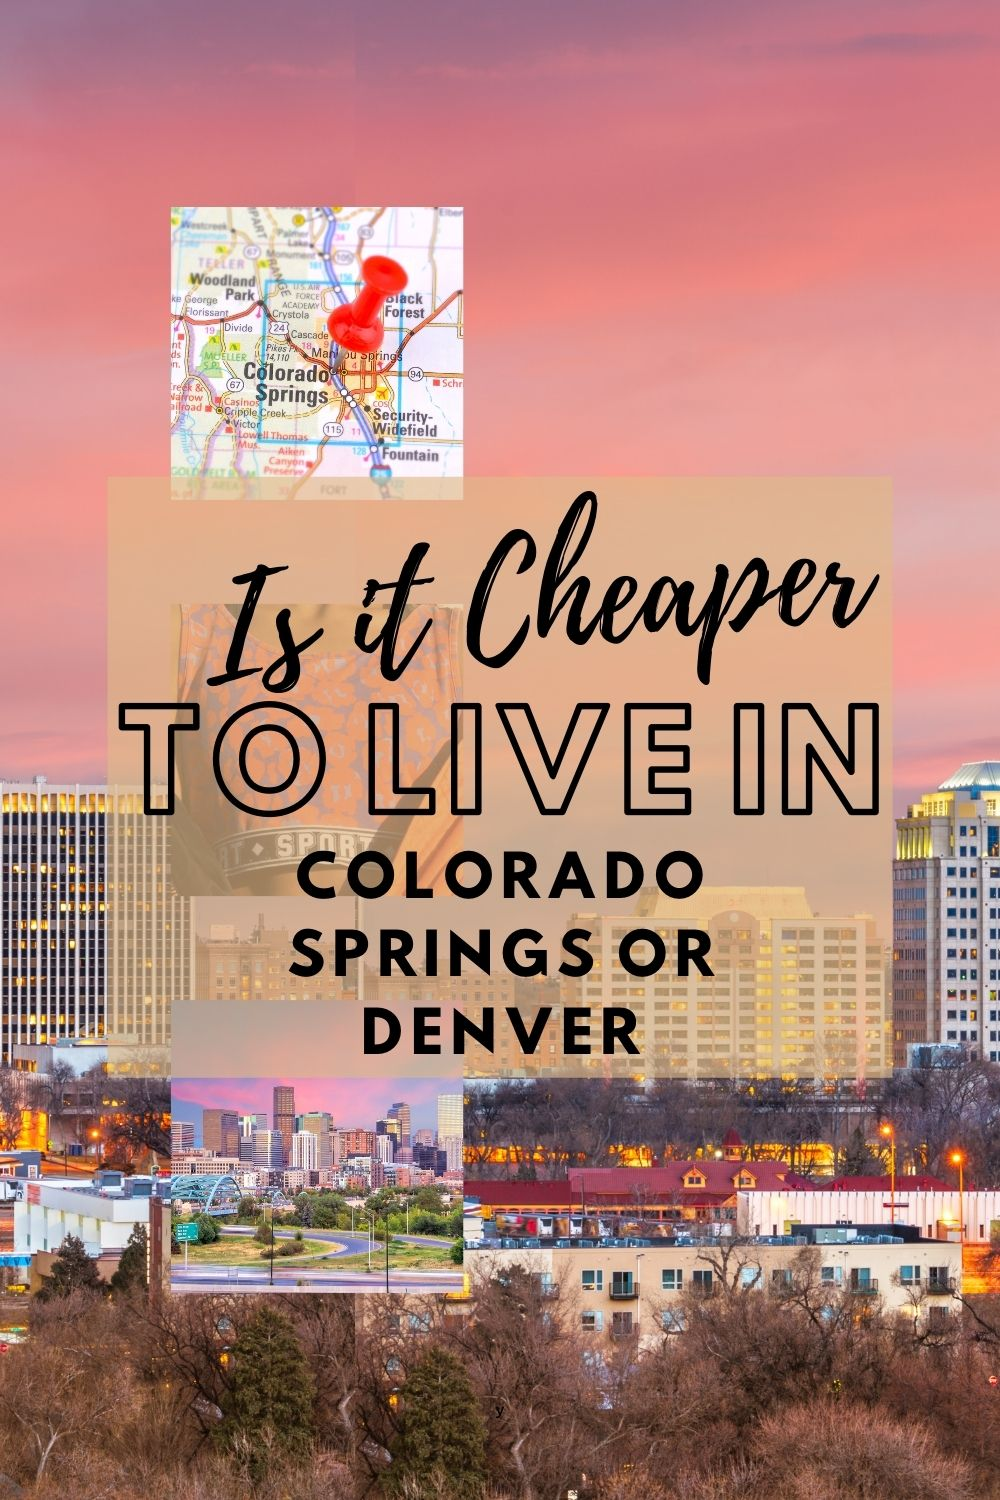 Is It Cheaper To Live In Denver or Colorado Springs